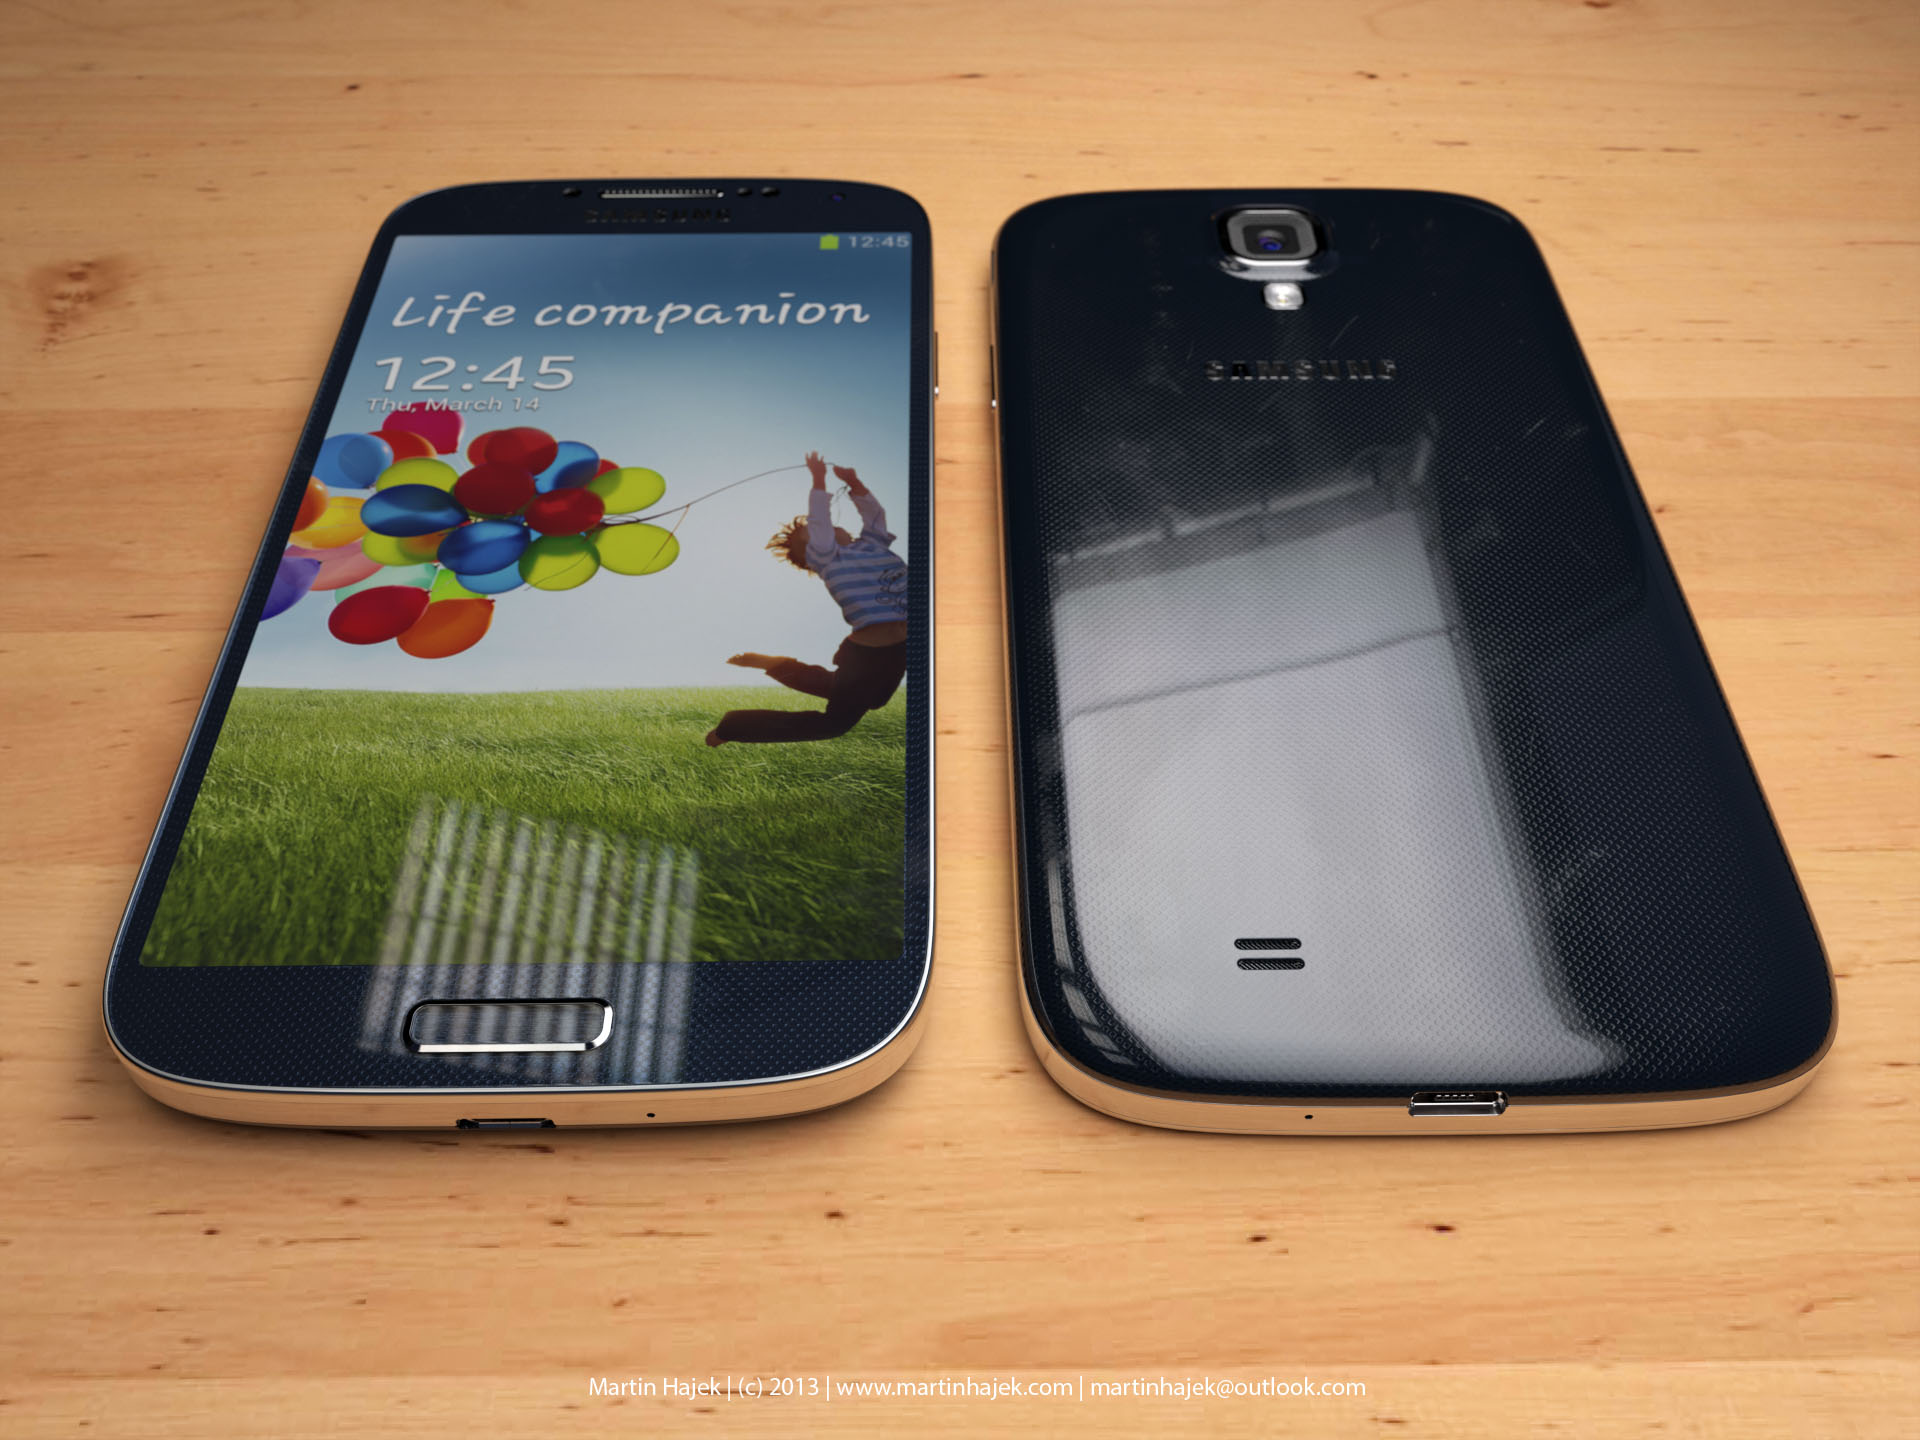 Size comparison (Galaxy S4 vs iPhone 5, Martin Hajek 001)